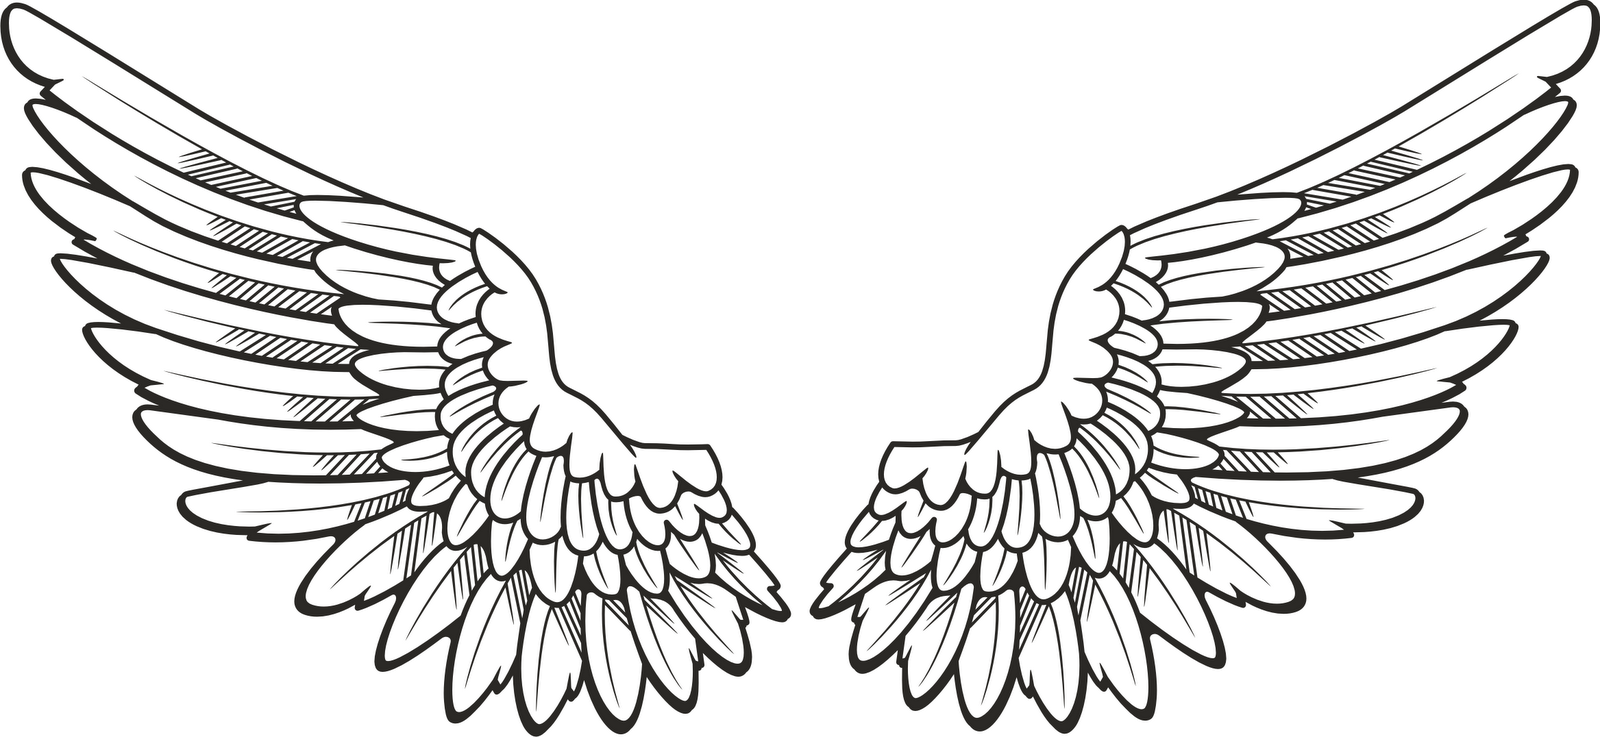 r minecraft wings feathers wings feathers pinterest rh pinterest com clipart wings png clipart wings free